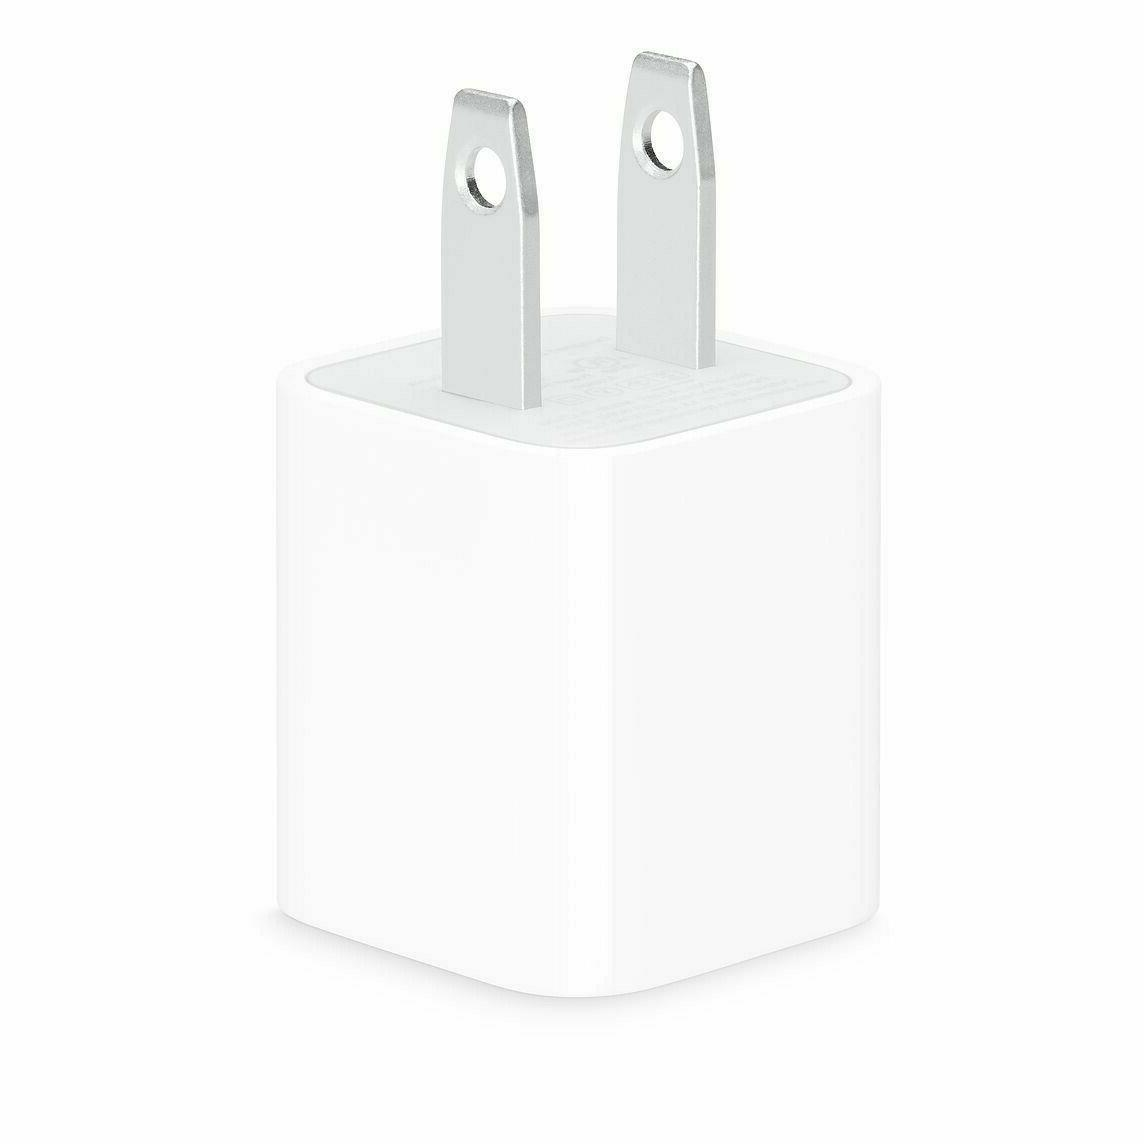 New iPhone 5W Adapter A1385